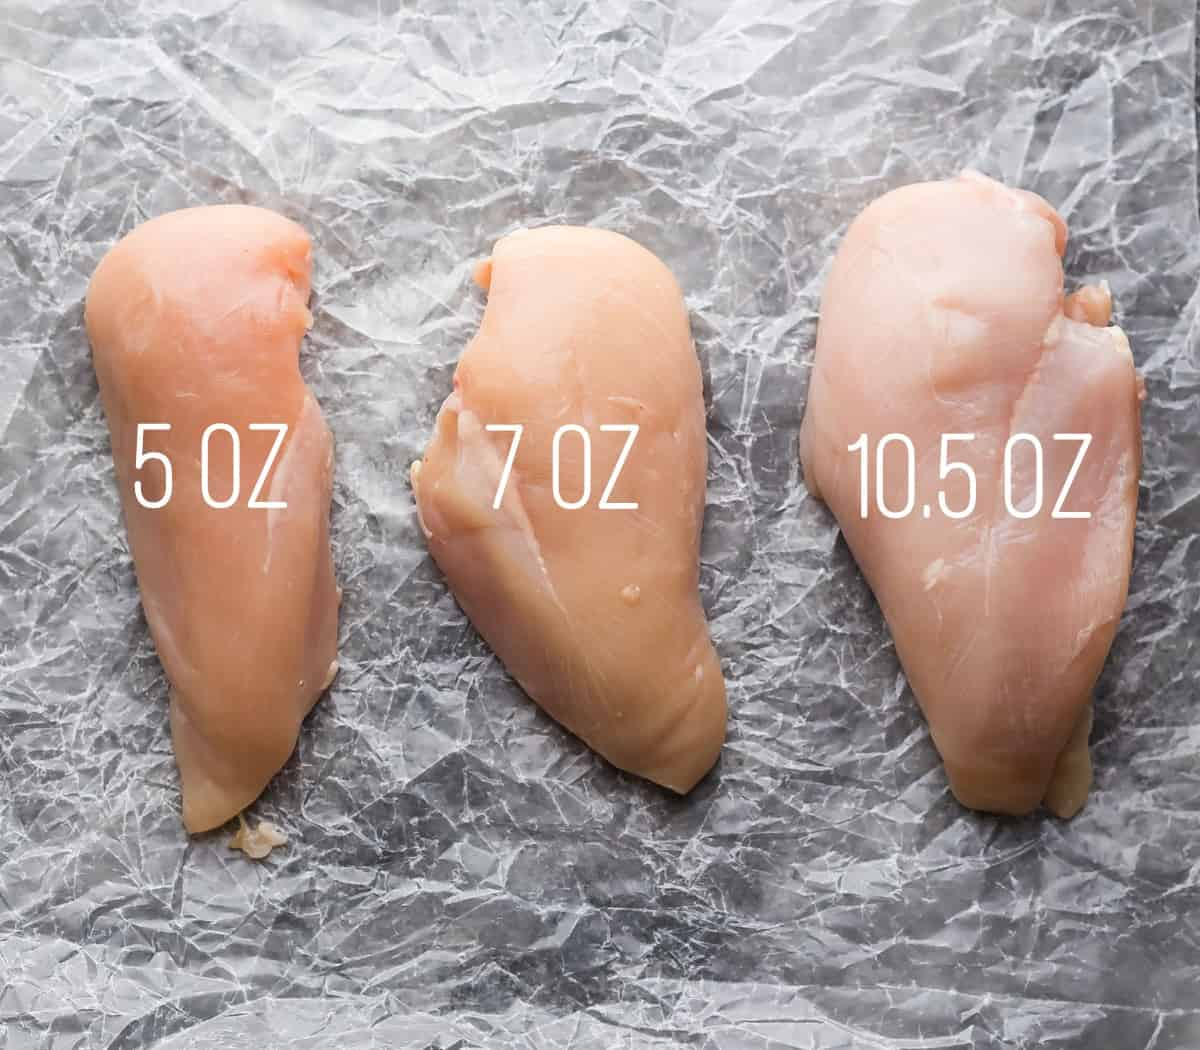 Size of chicken breast